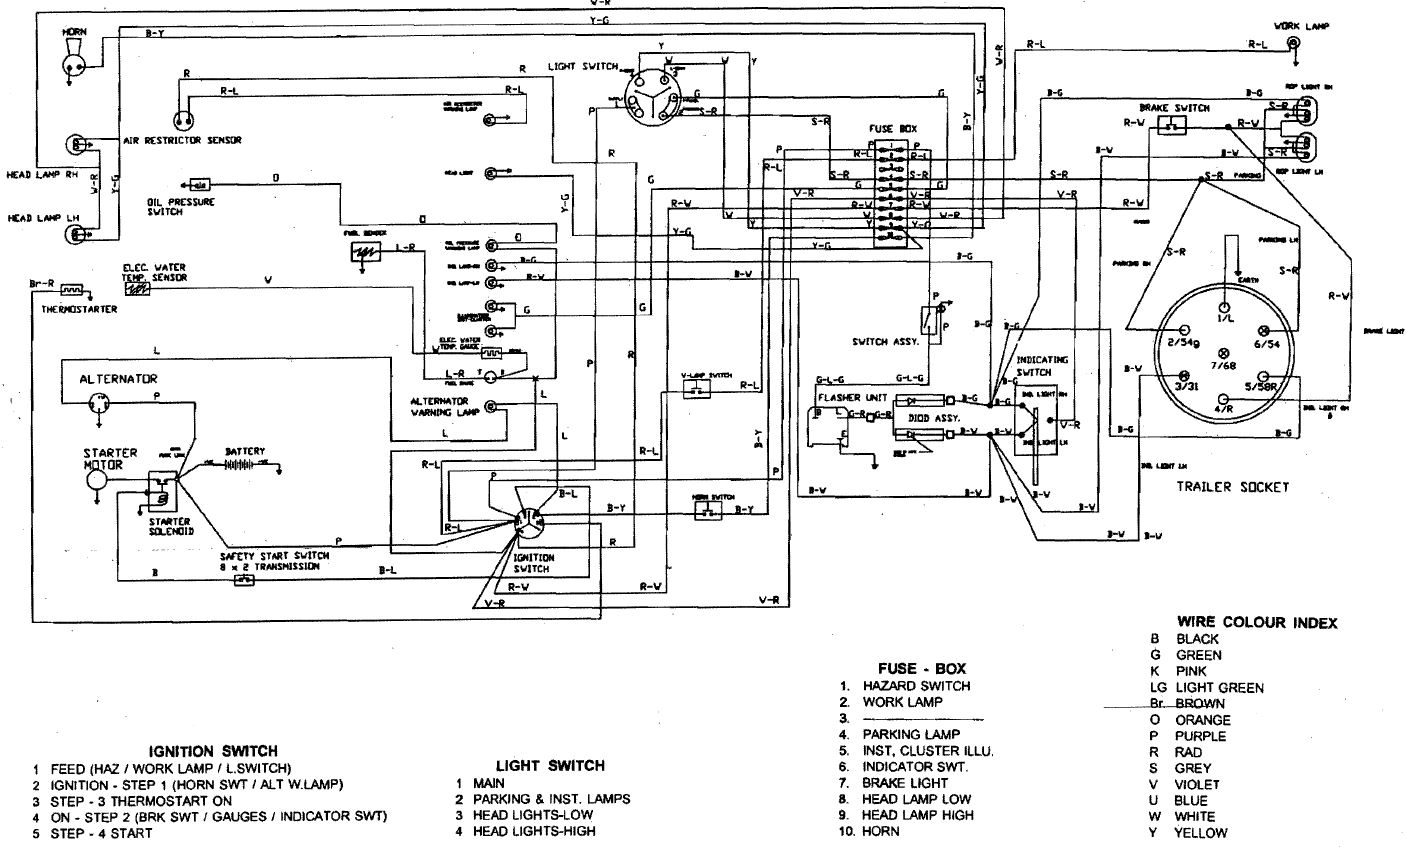 DFC Mf 240 Tractor Wiring Diagram | Wiring ResourcesWiring Resources